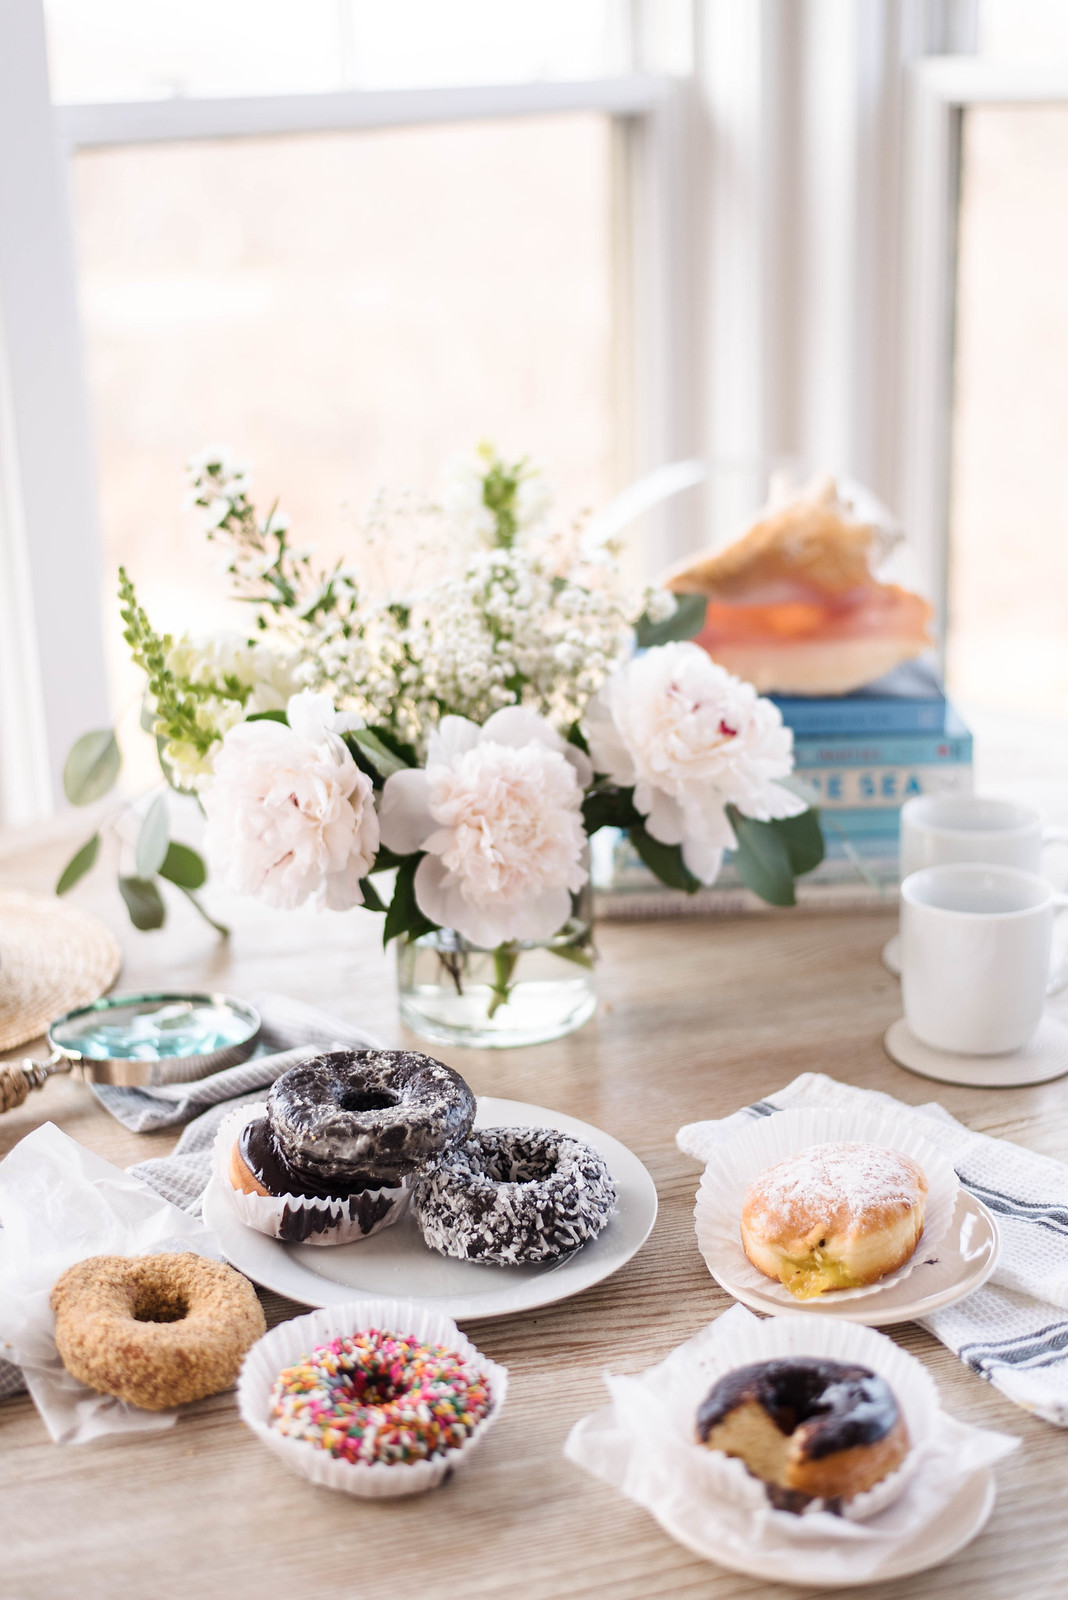 Donuts and Flowers  on http://juliettelaura.blogspot.com/